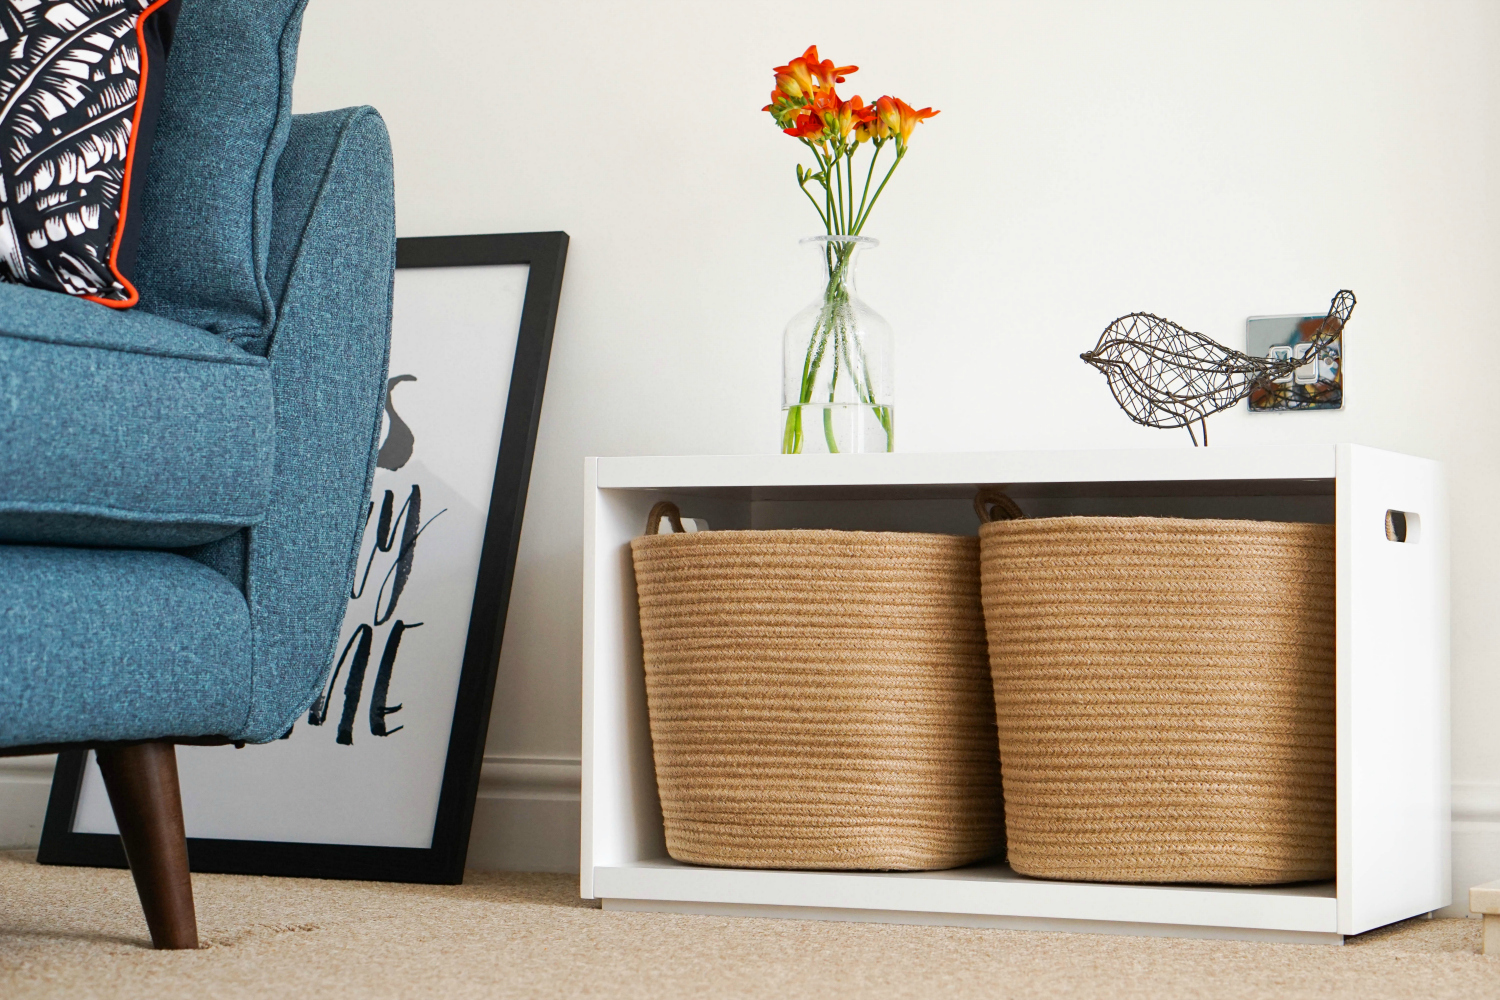 The Ordinary Lovely: Rackham storage from Great Little Trading Co.